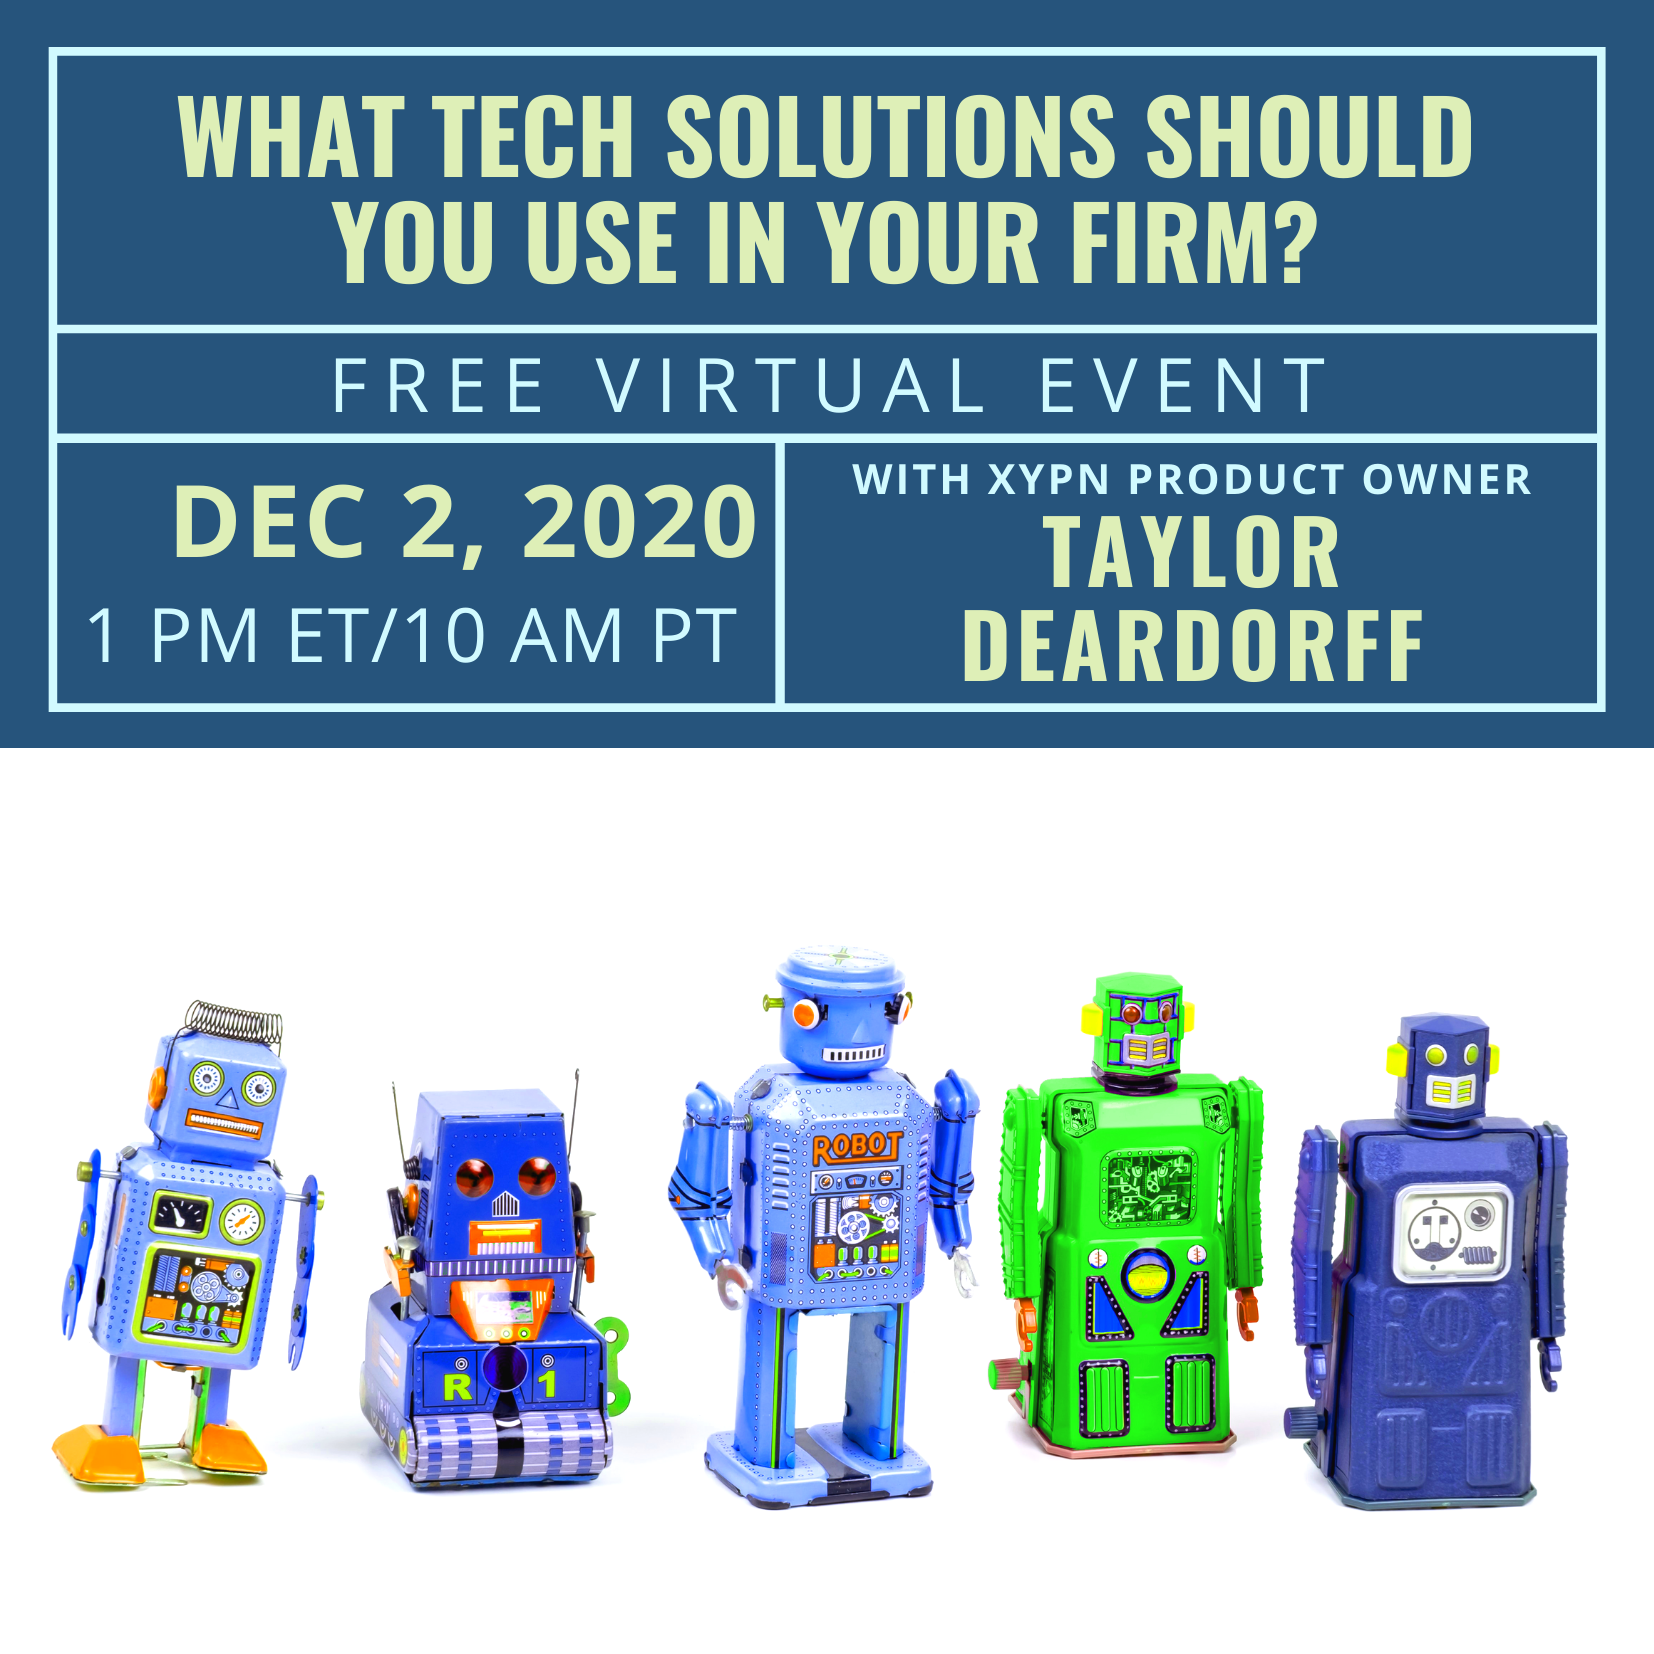 Free Virtual Event: What Tech Solutions Should You Use in Your Firm?